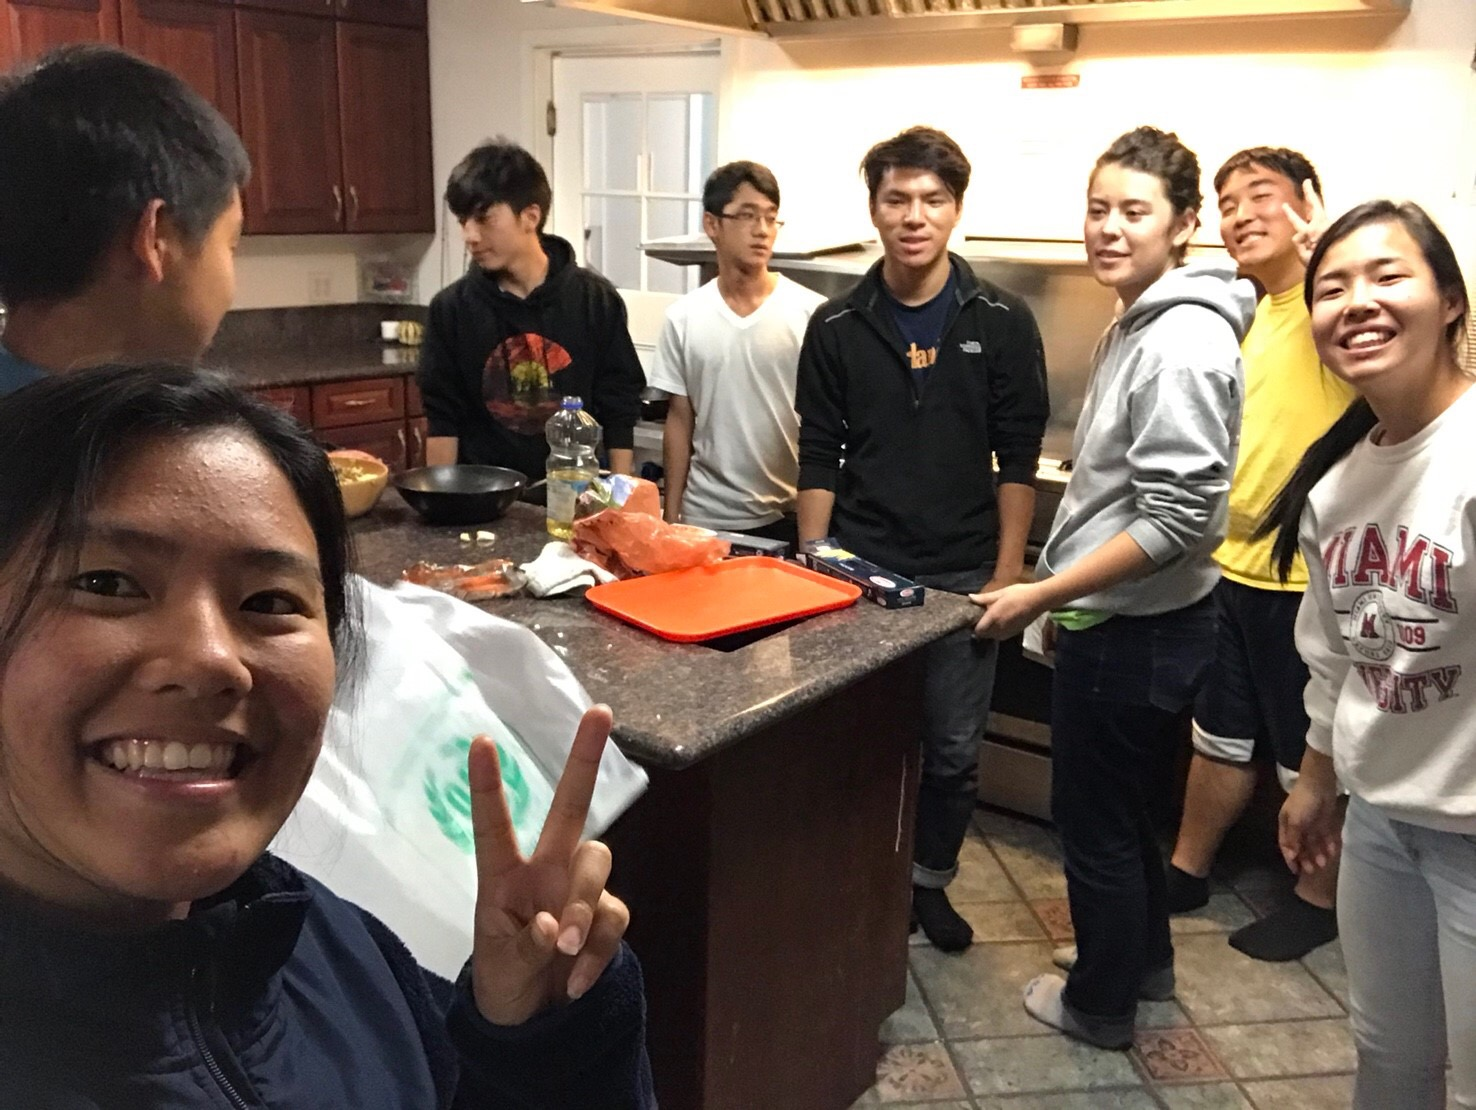 Cooking dinner as a team!